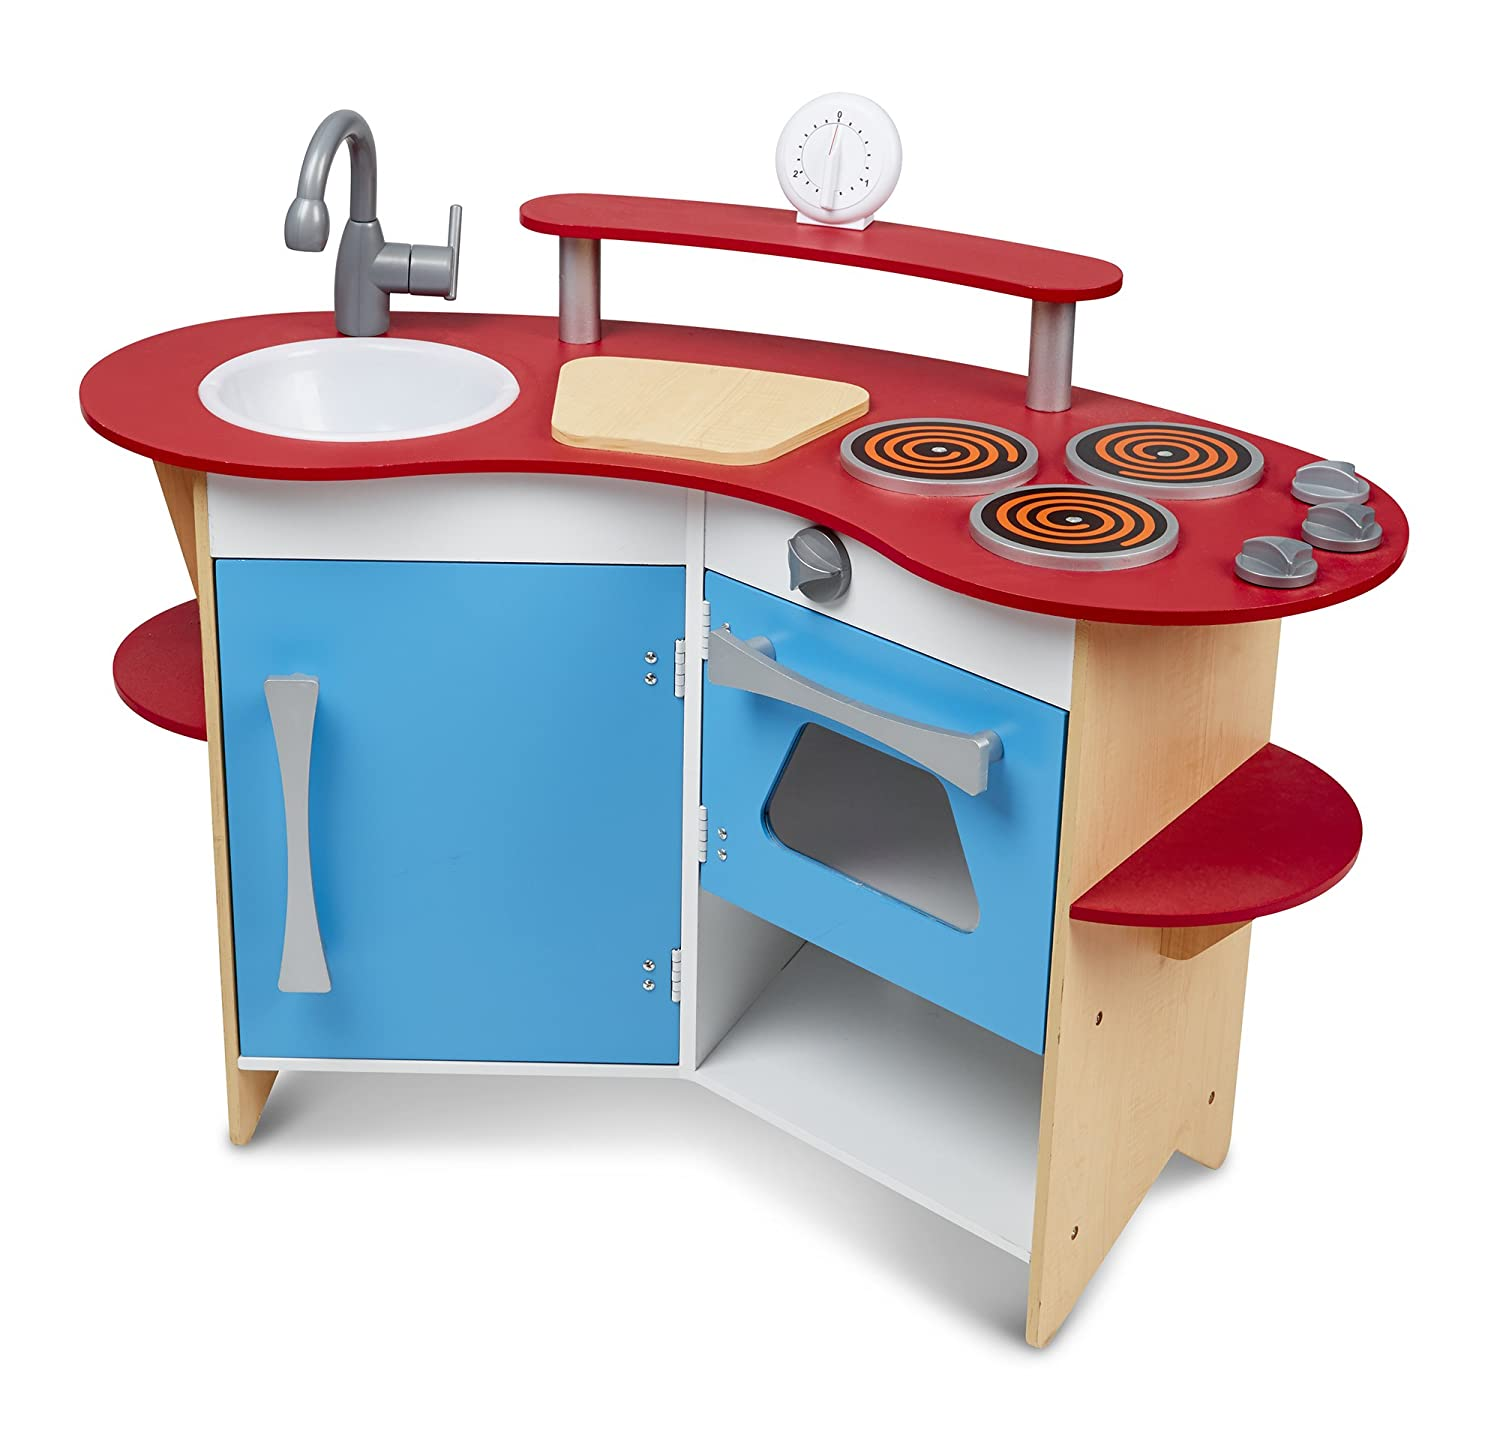 Kids Kitchen Play Set Corner Wooden Cook Bake Toddler Gift Girl Boy ...